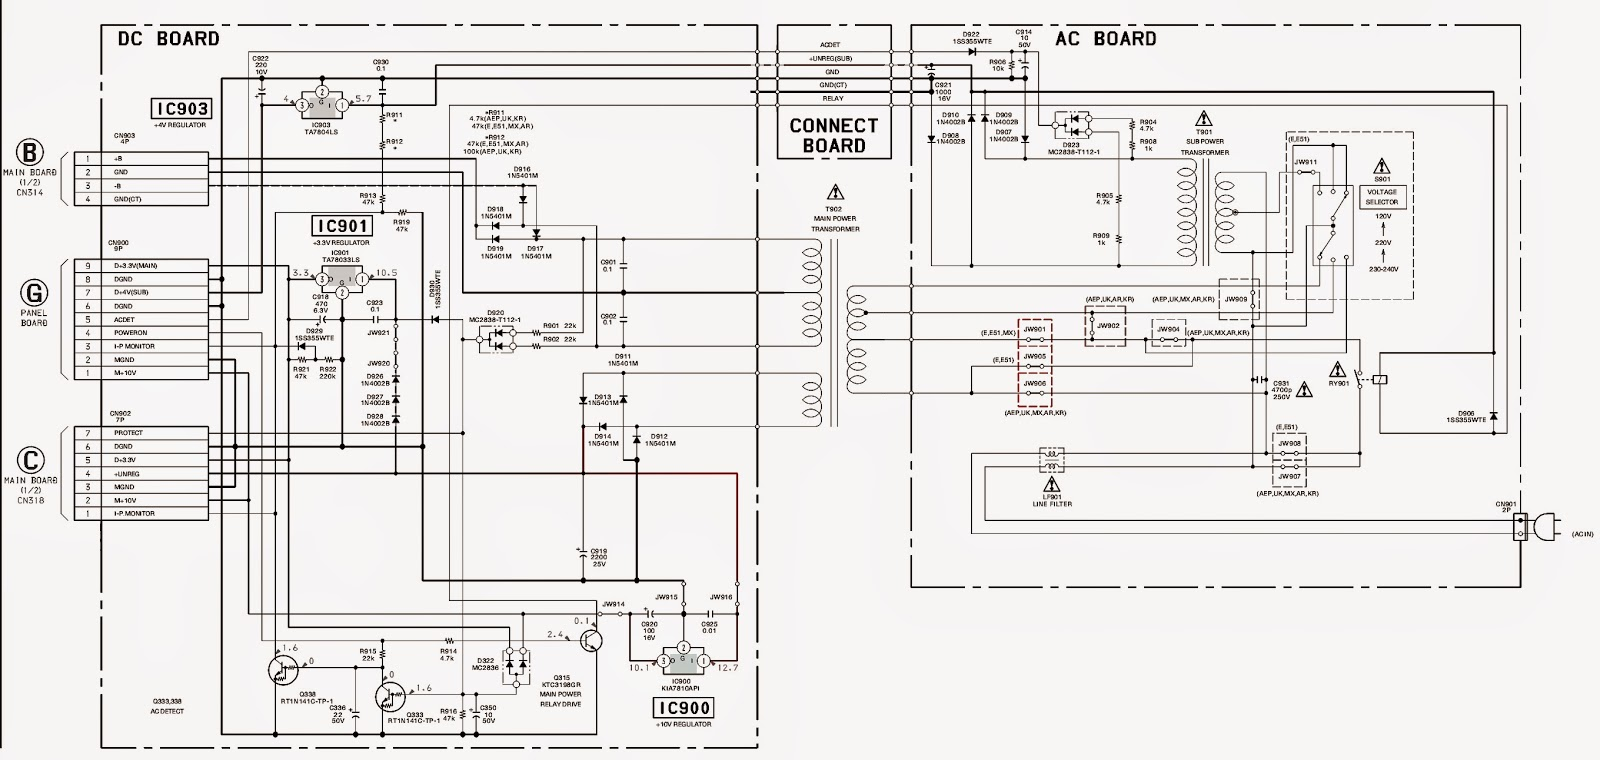 sony hcd-nez50 - schematic - power amp